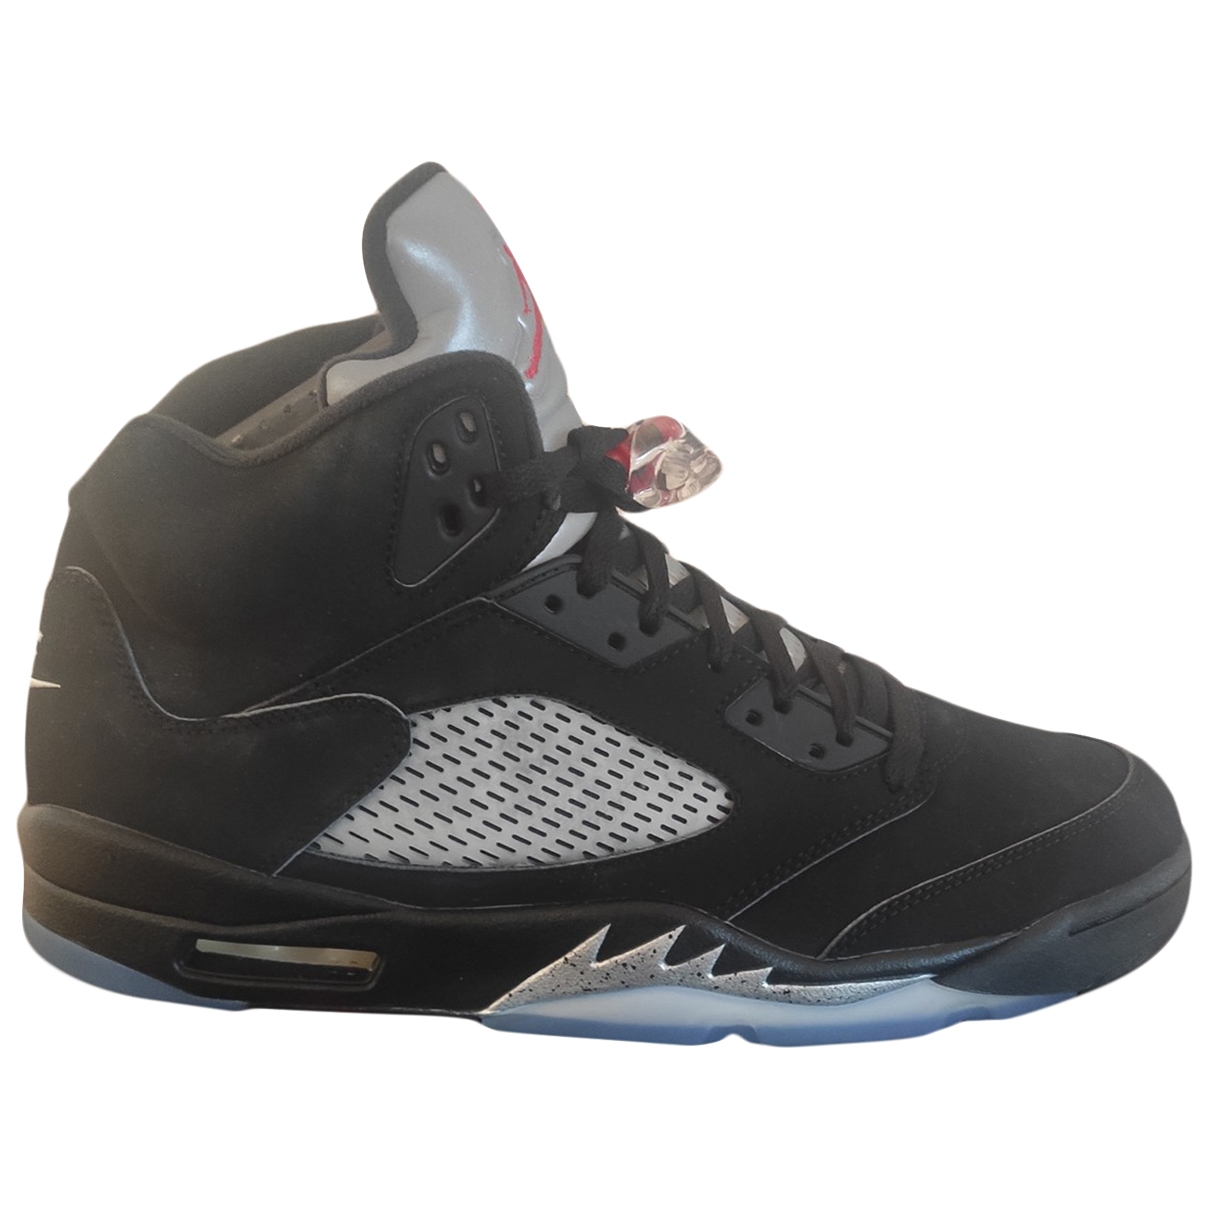 Jordan Air Jordan 5 Black Leather Trainers for Men 13 US